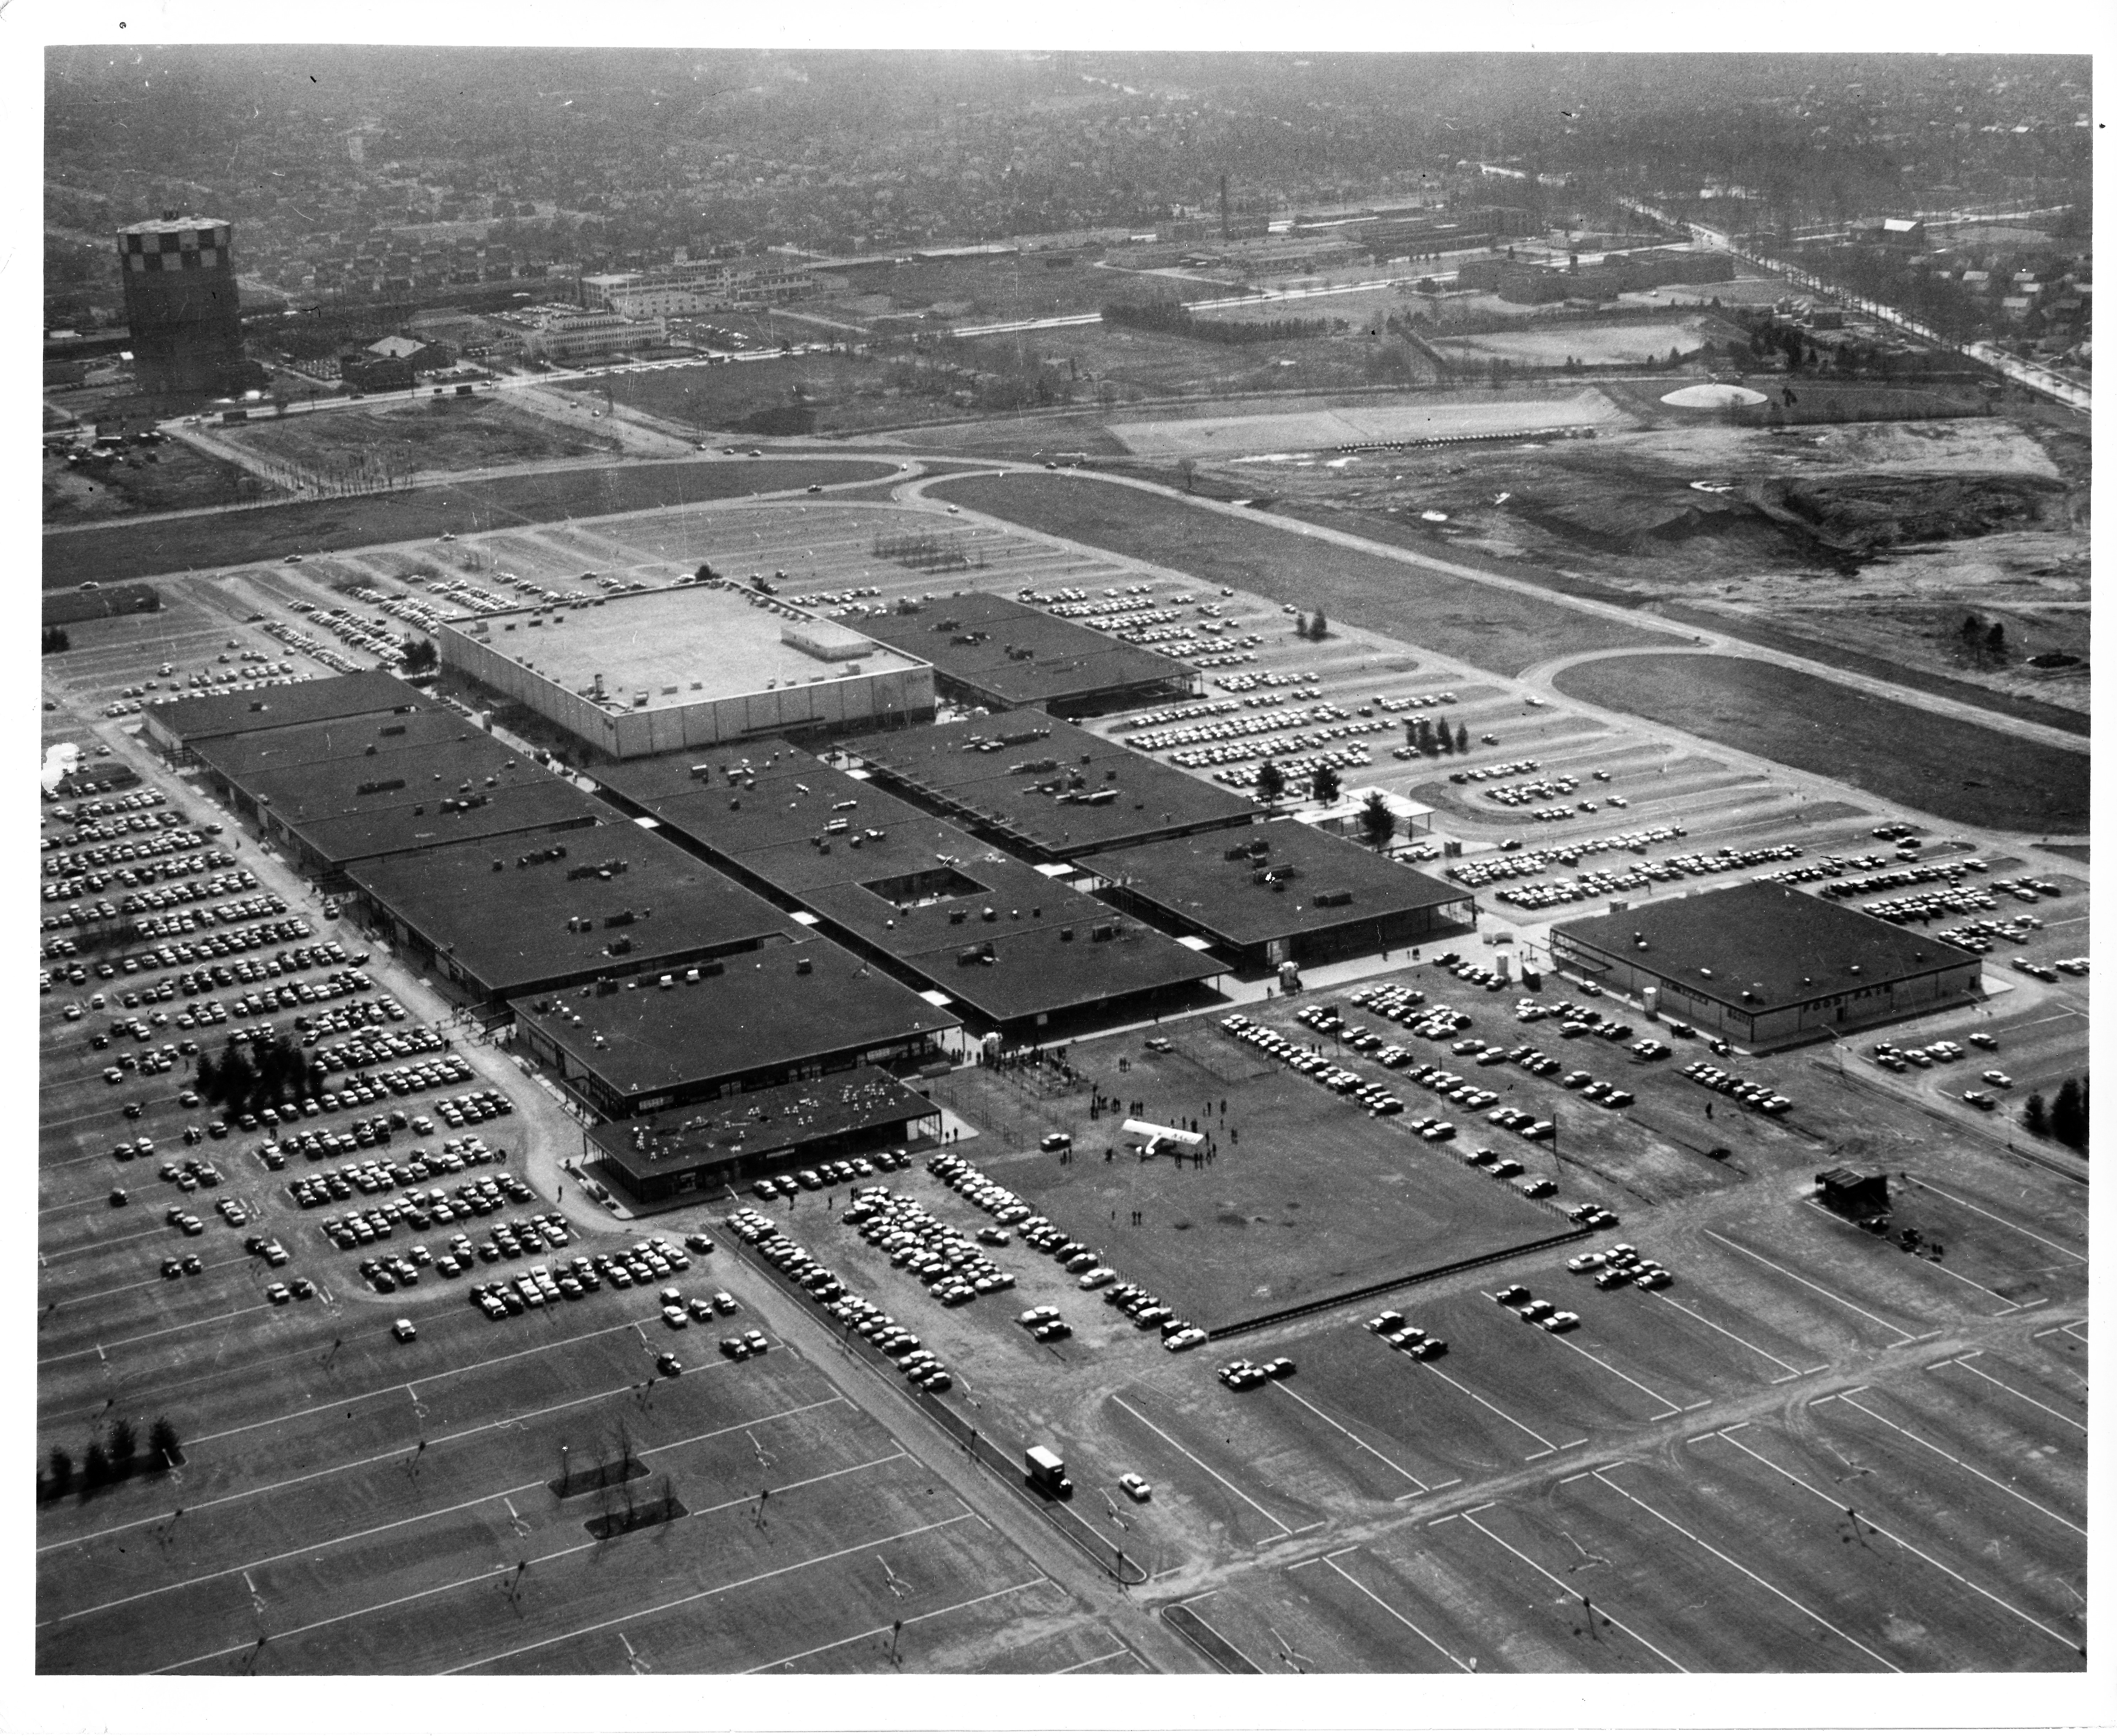 Old Photo Sky View of Roosevelt Field New York Long Island